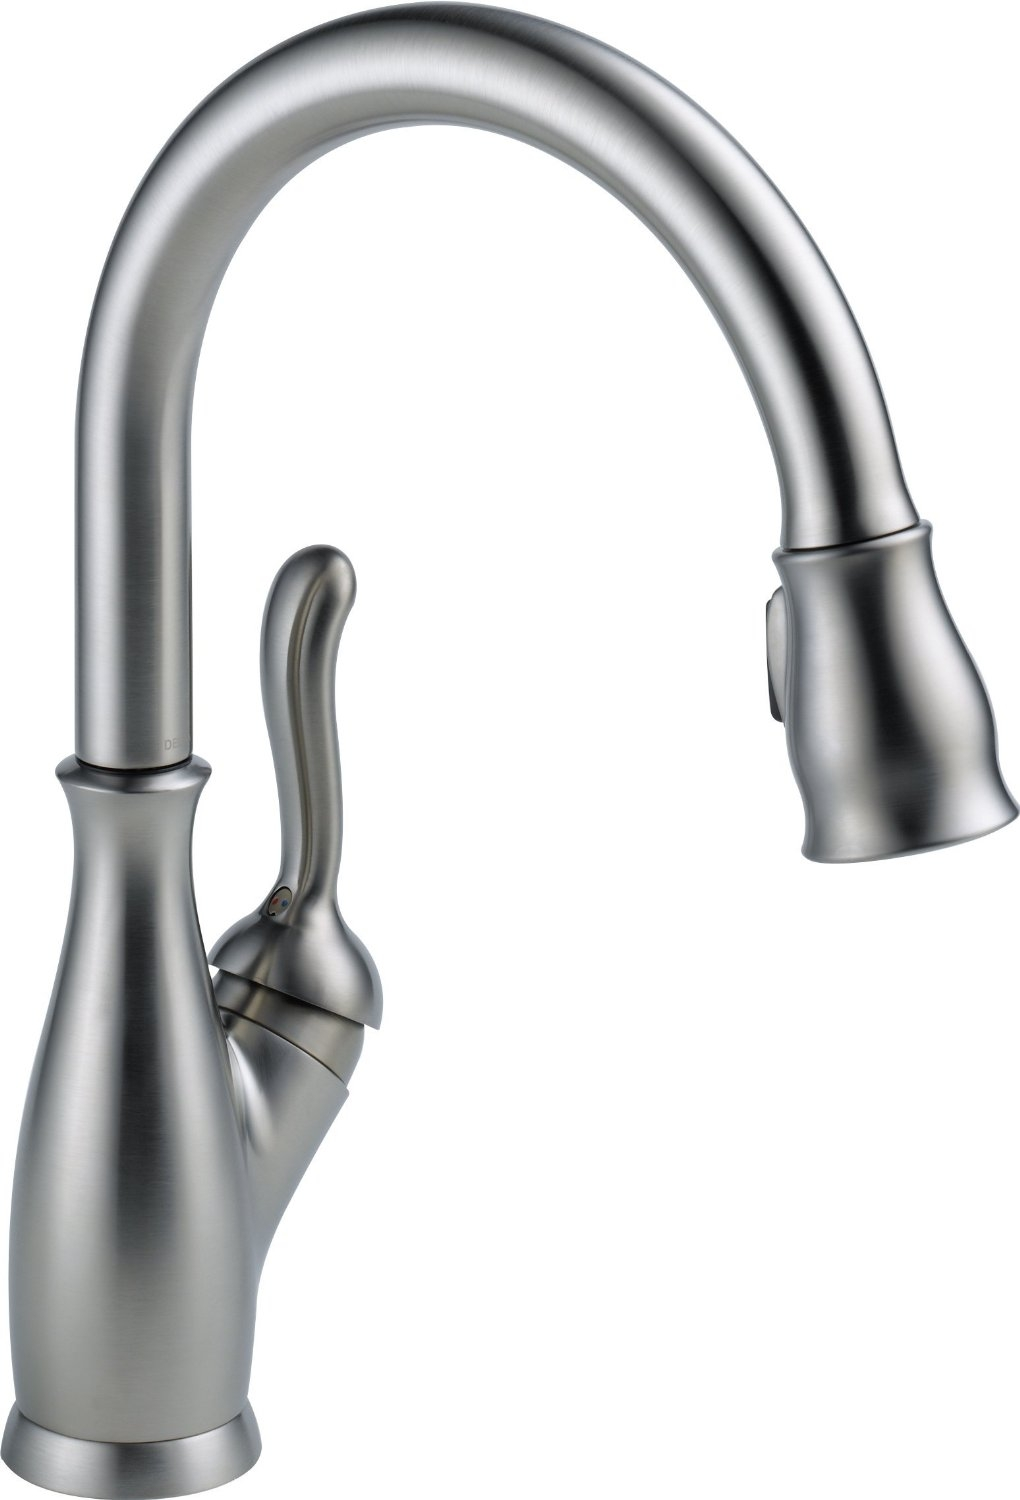 Ideas, delta kitchen faucets the complete guide top reviews with measurements 1020 x 1500  .